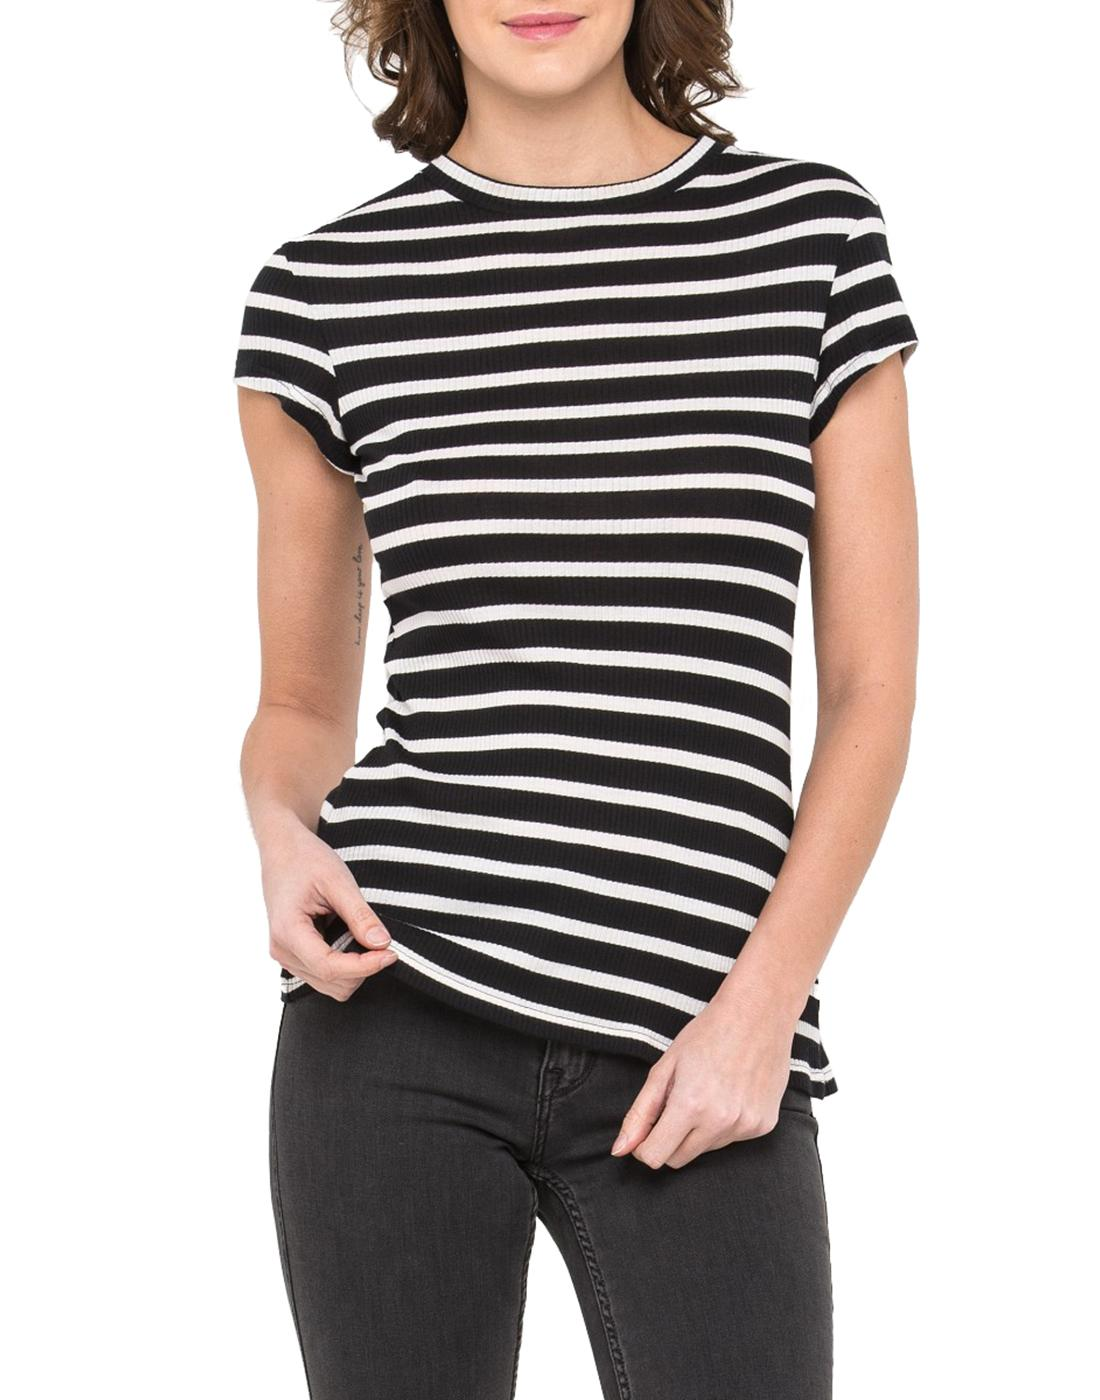 LEE JEANS Womens Retro 70s Ribbed Striped Top